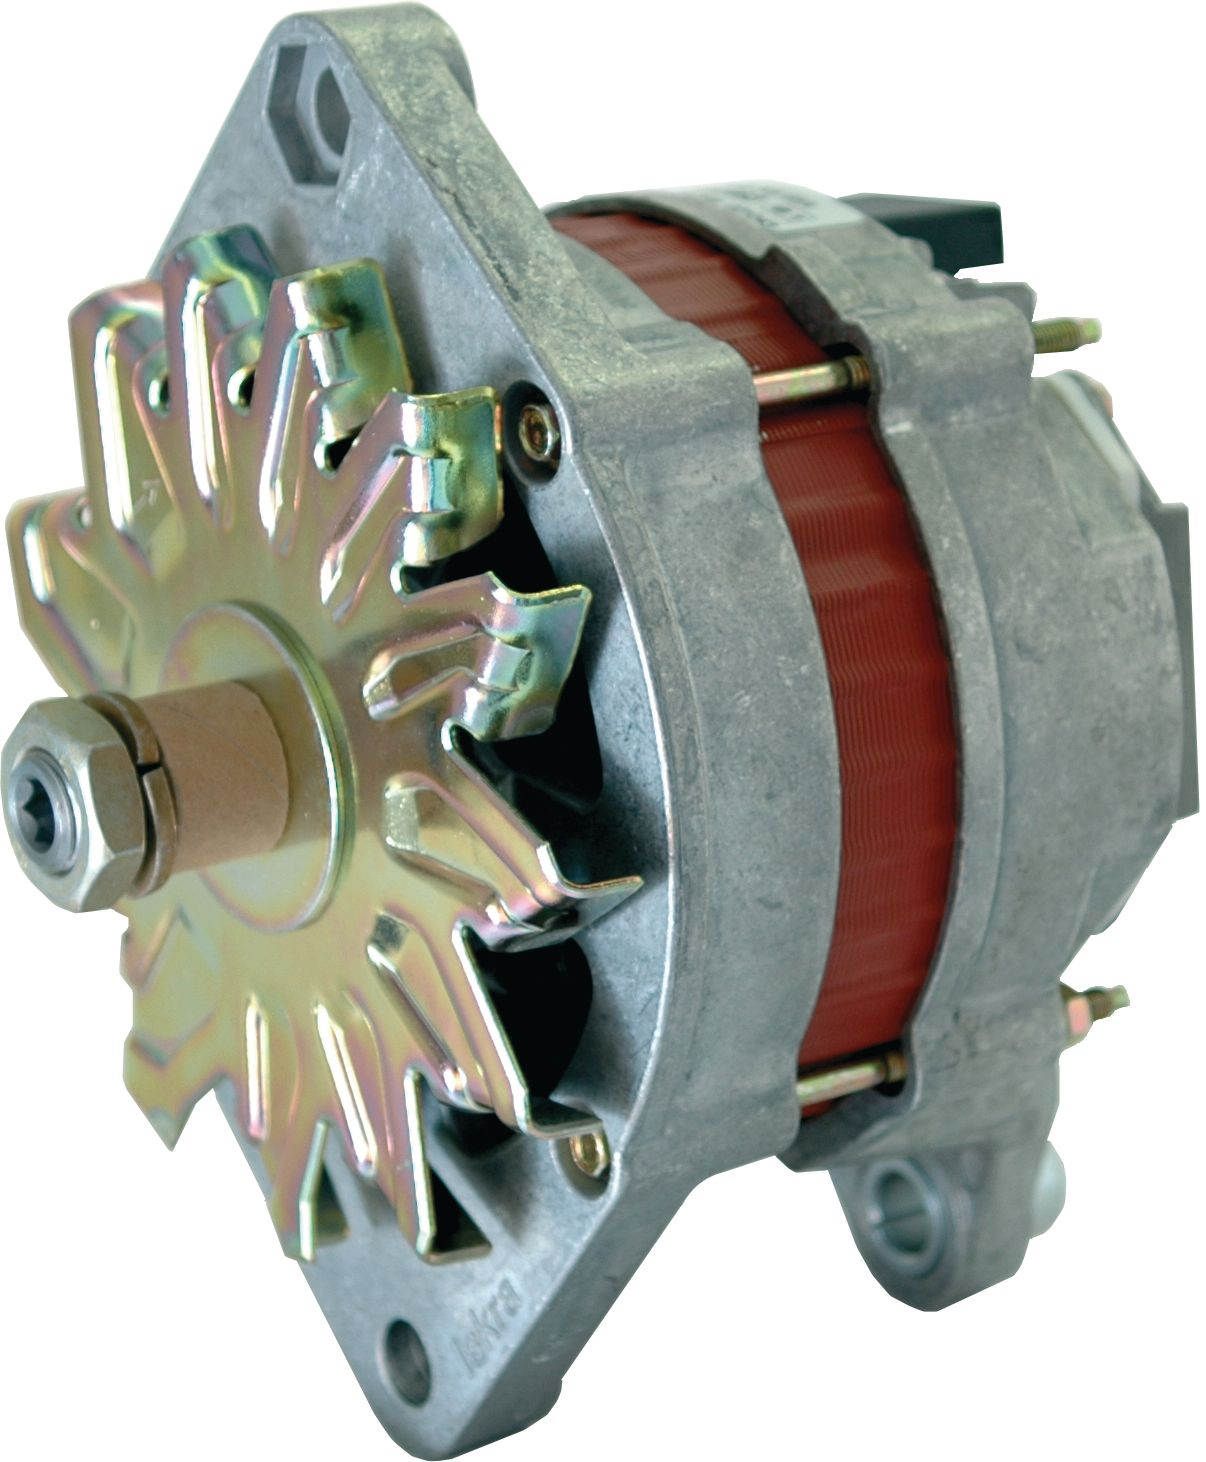 HURLIMANN ALTERNATOR (ISKRA) 35924